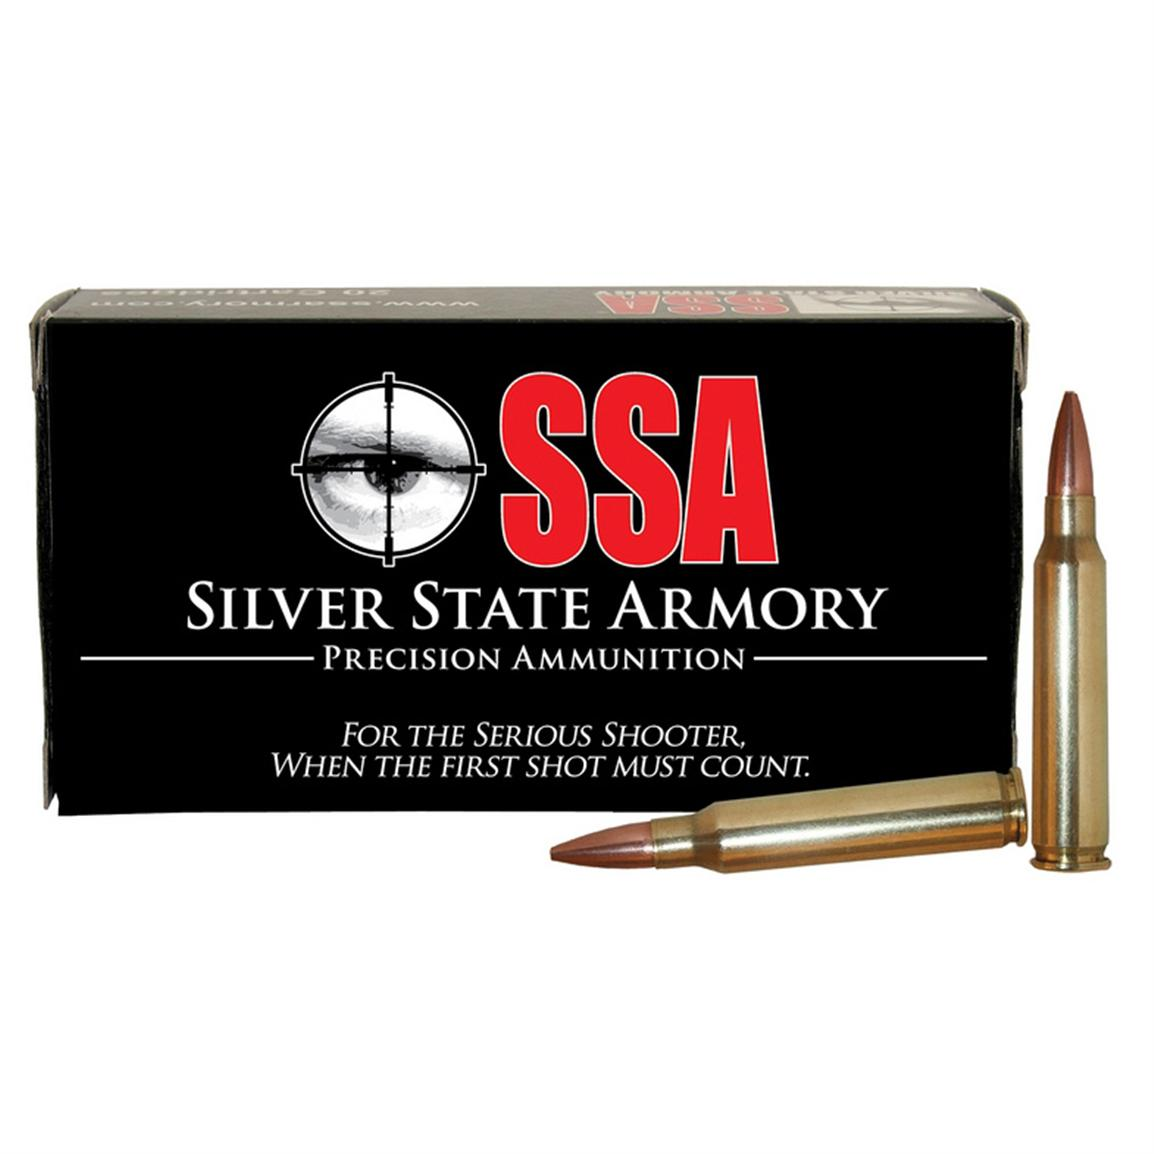 SSA® .223 (5.56x45mm) Barnes® Lead Free Jktd. Frangible 55 Grain 20 rounds